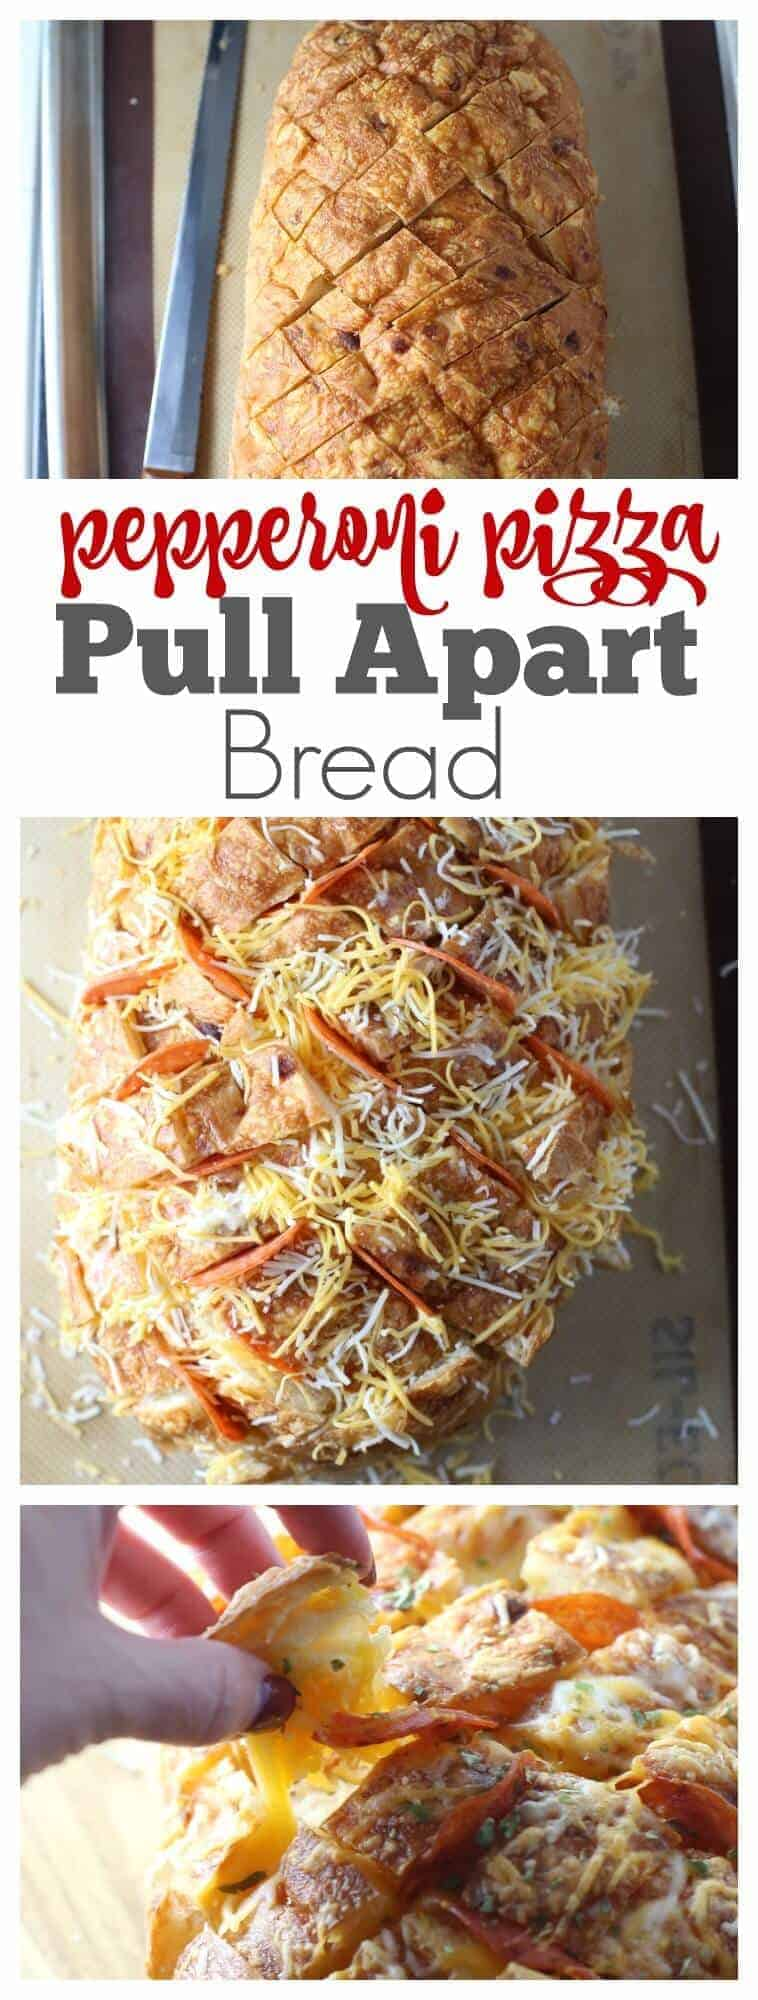 Pepperoni Pizza Pull Apart Bread - Easy and delicious appetizer, side dish and after school snack!